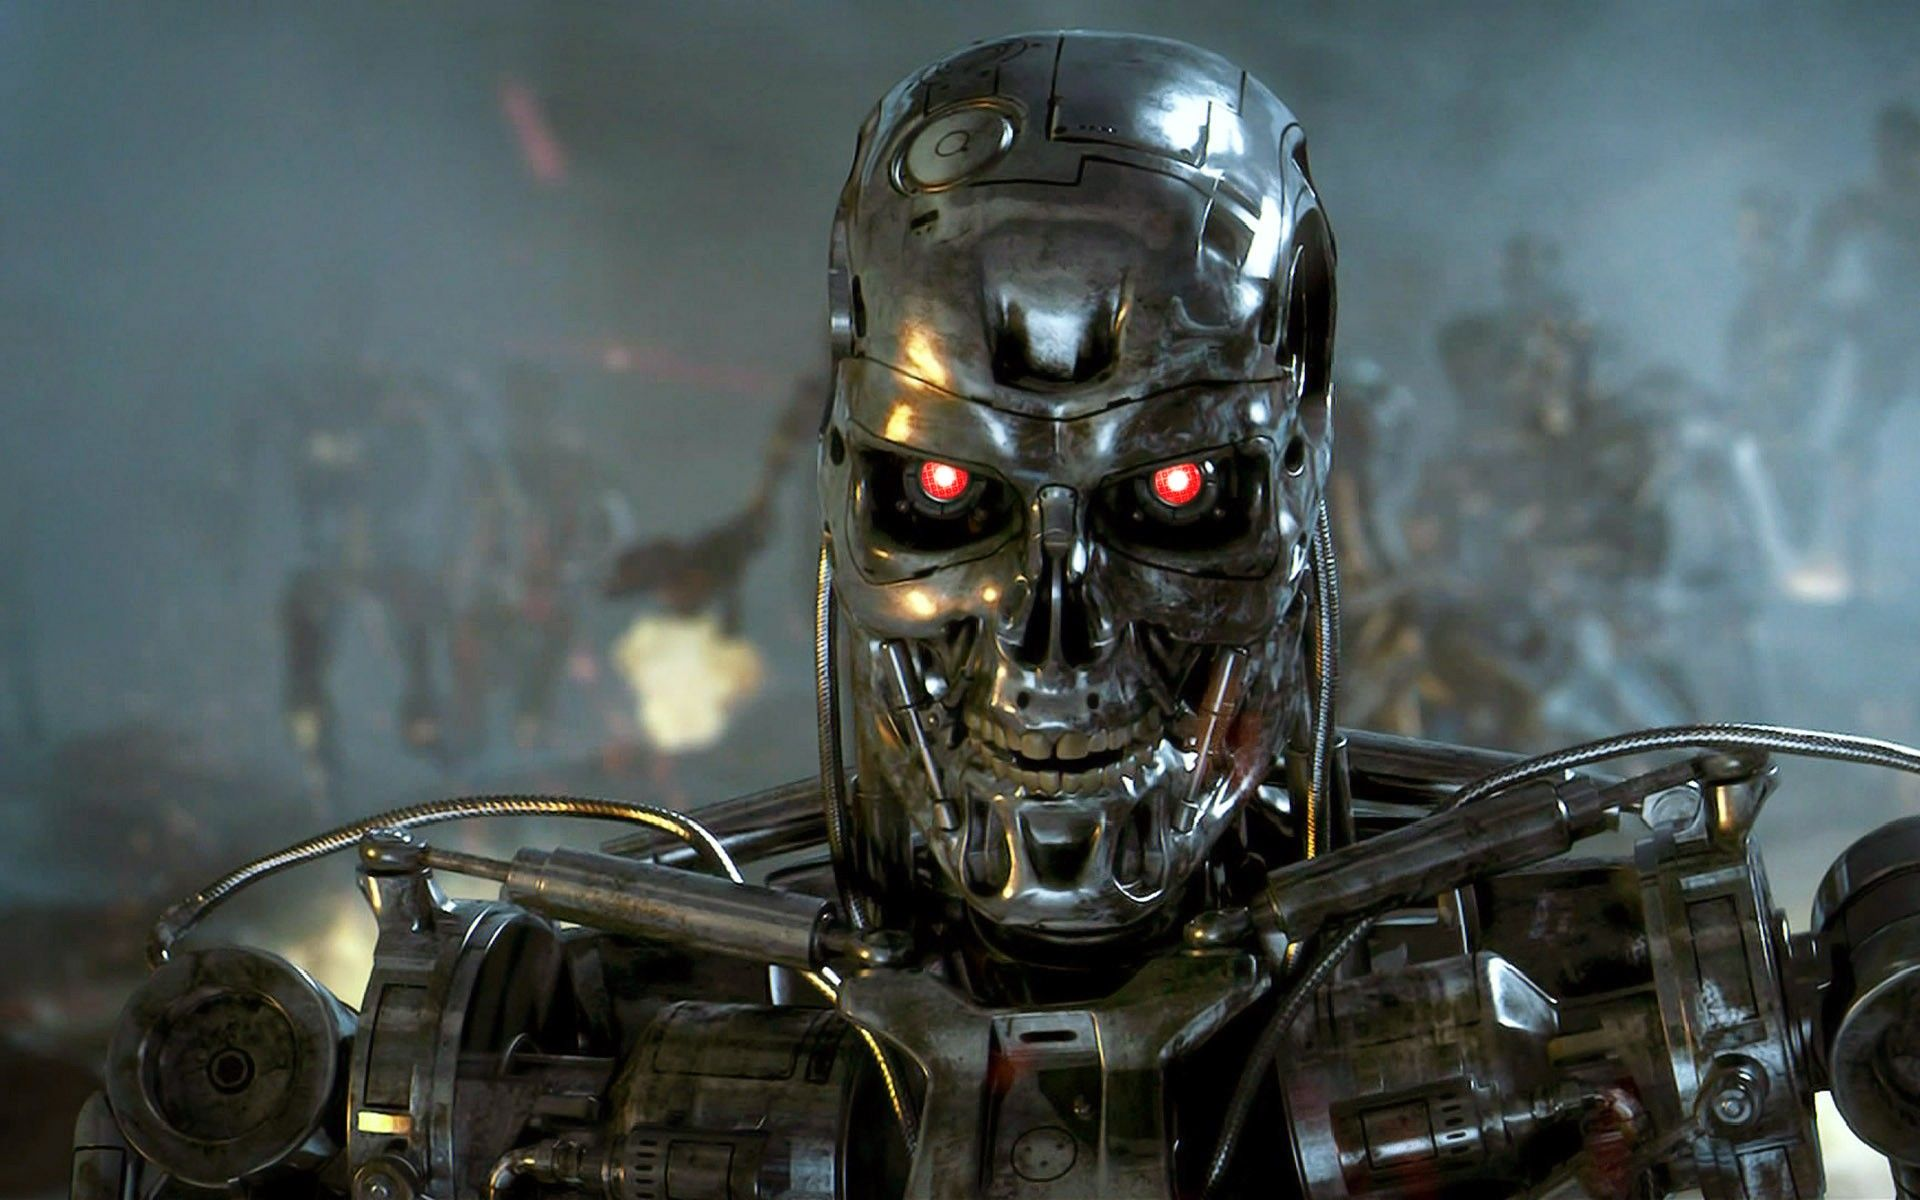 5. The Terminator Could Bring About Judgment Day